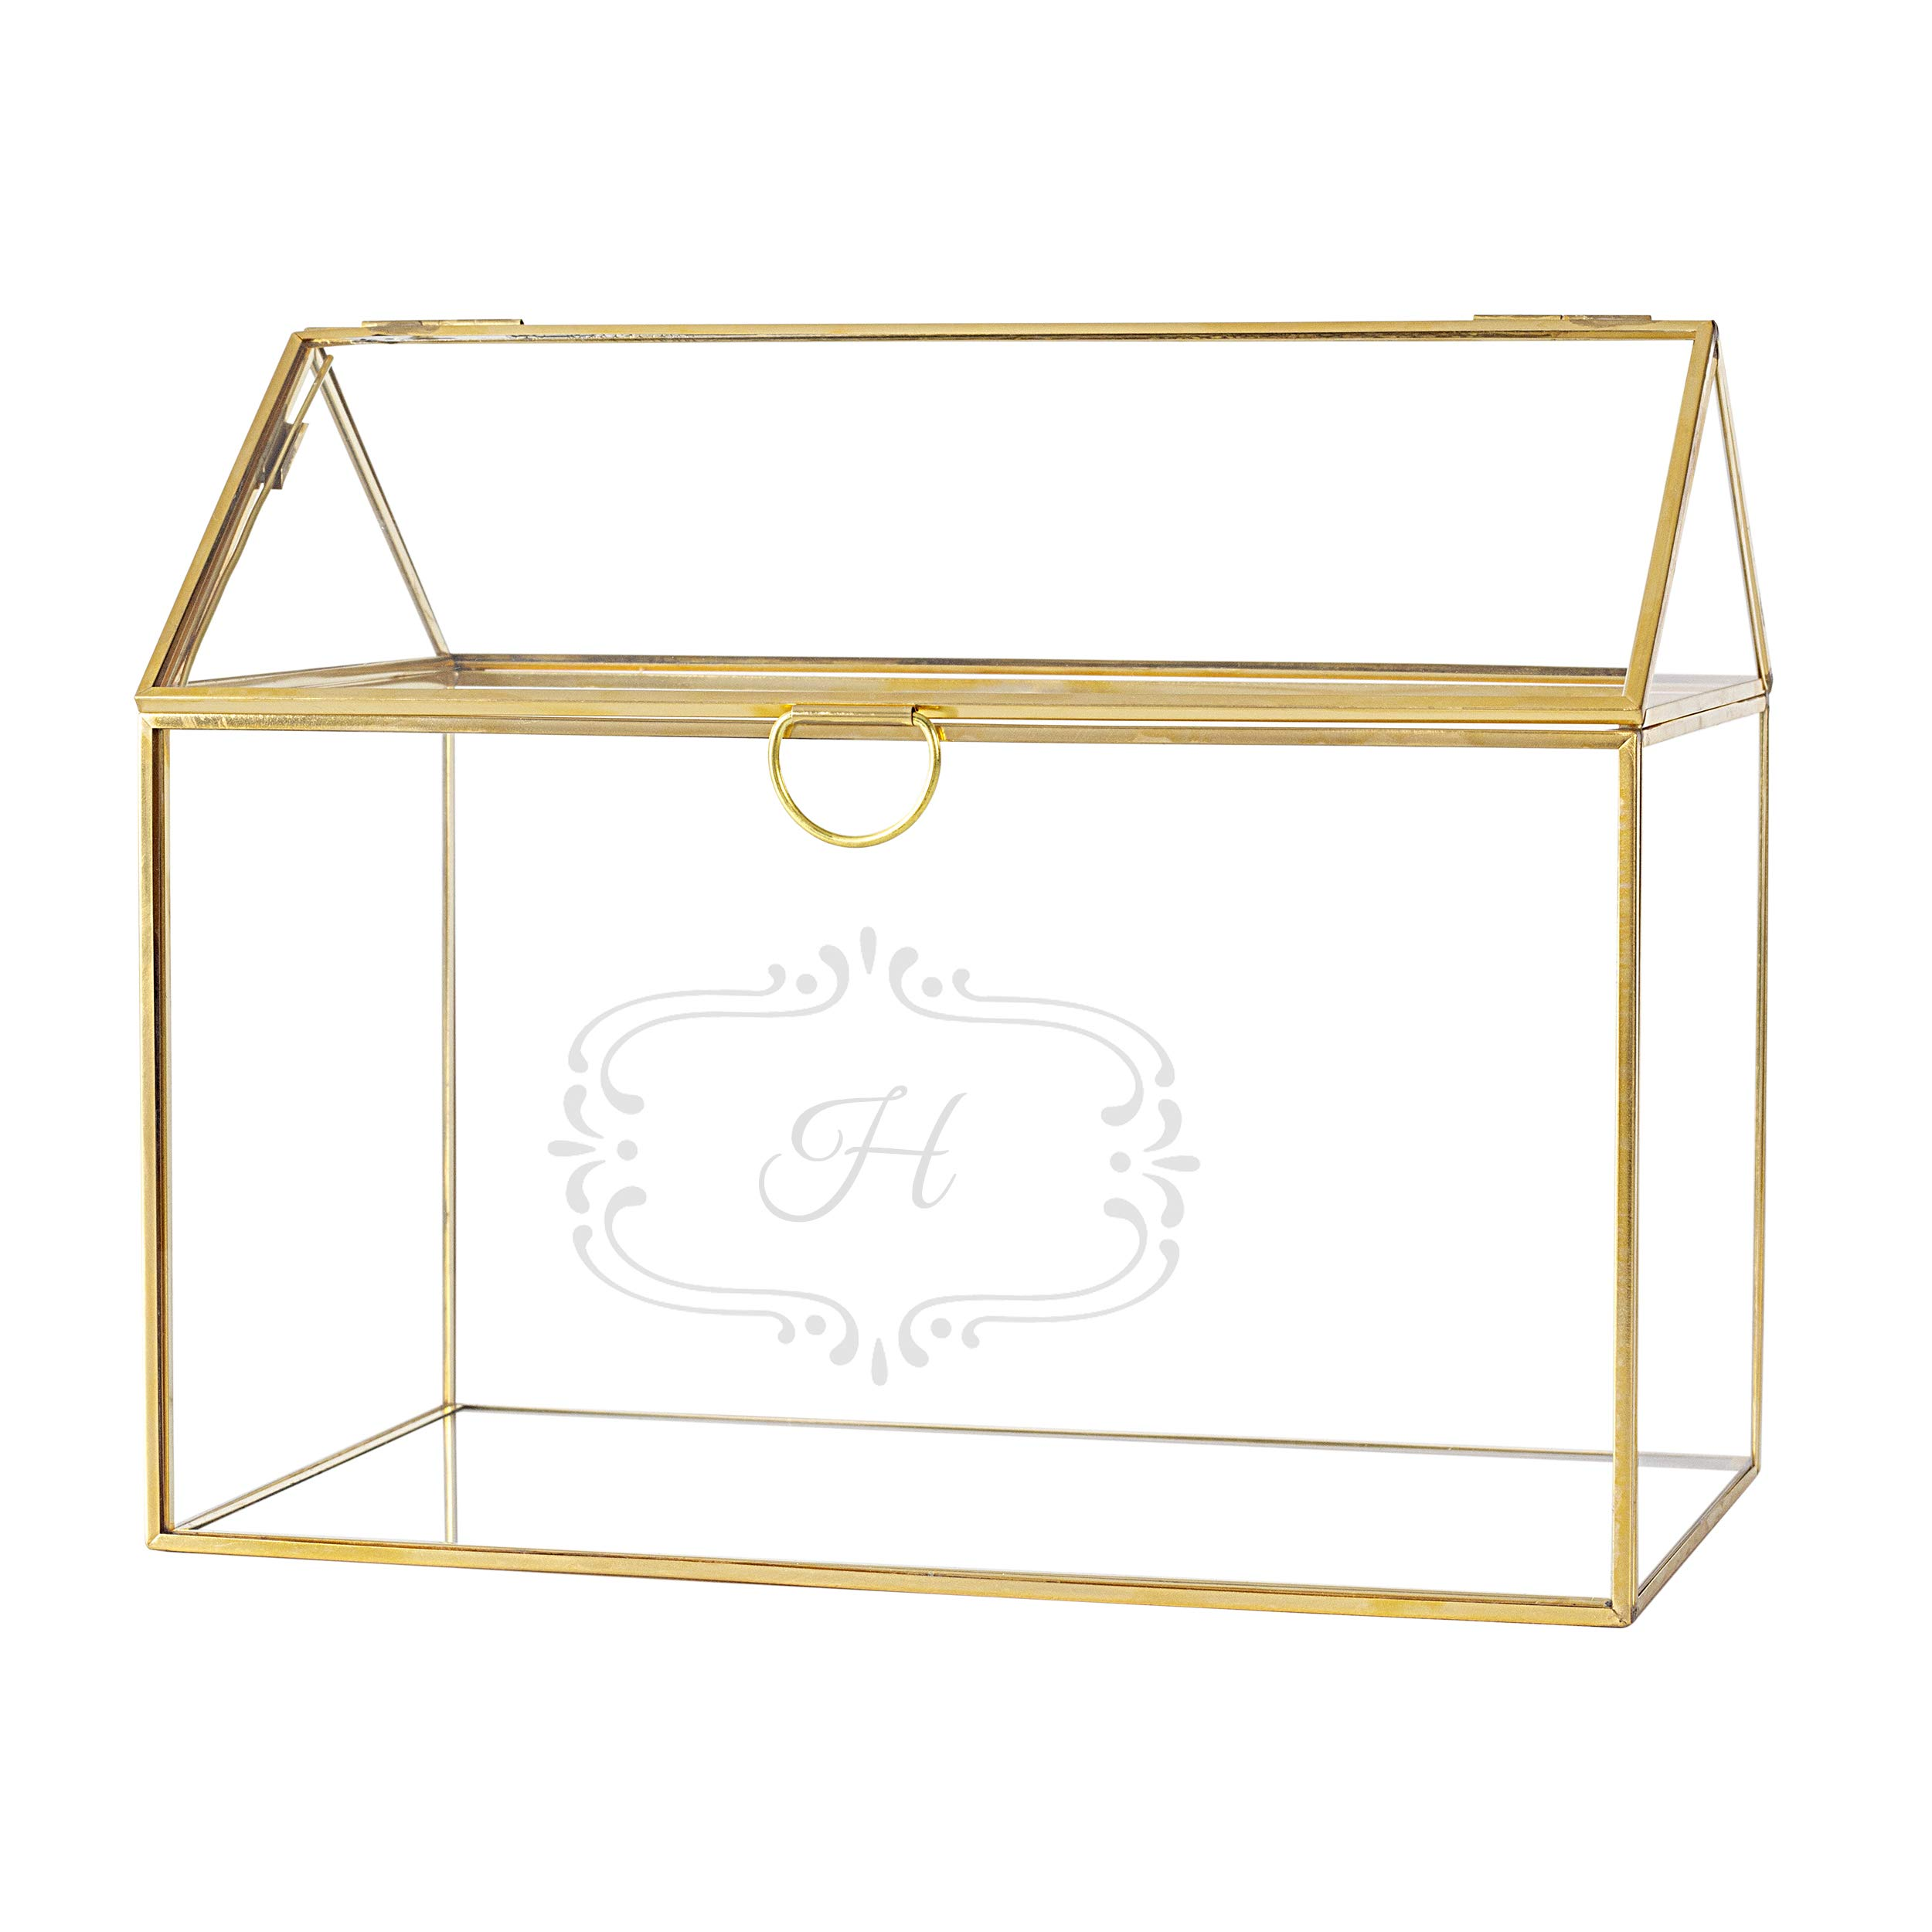 Cathy's Concepts Personalized Glass Terrarium Reception Gift Card Holder, Gold